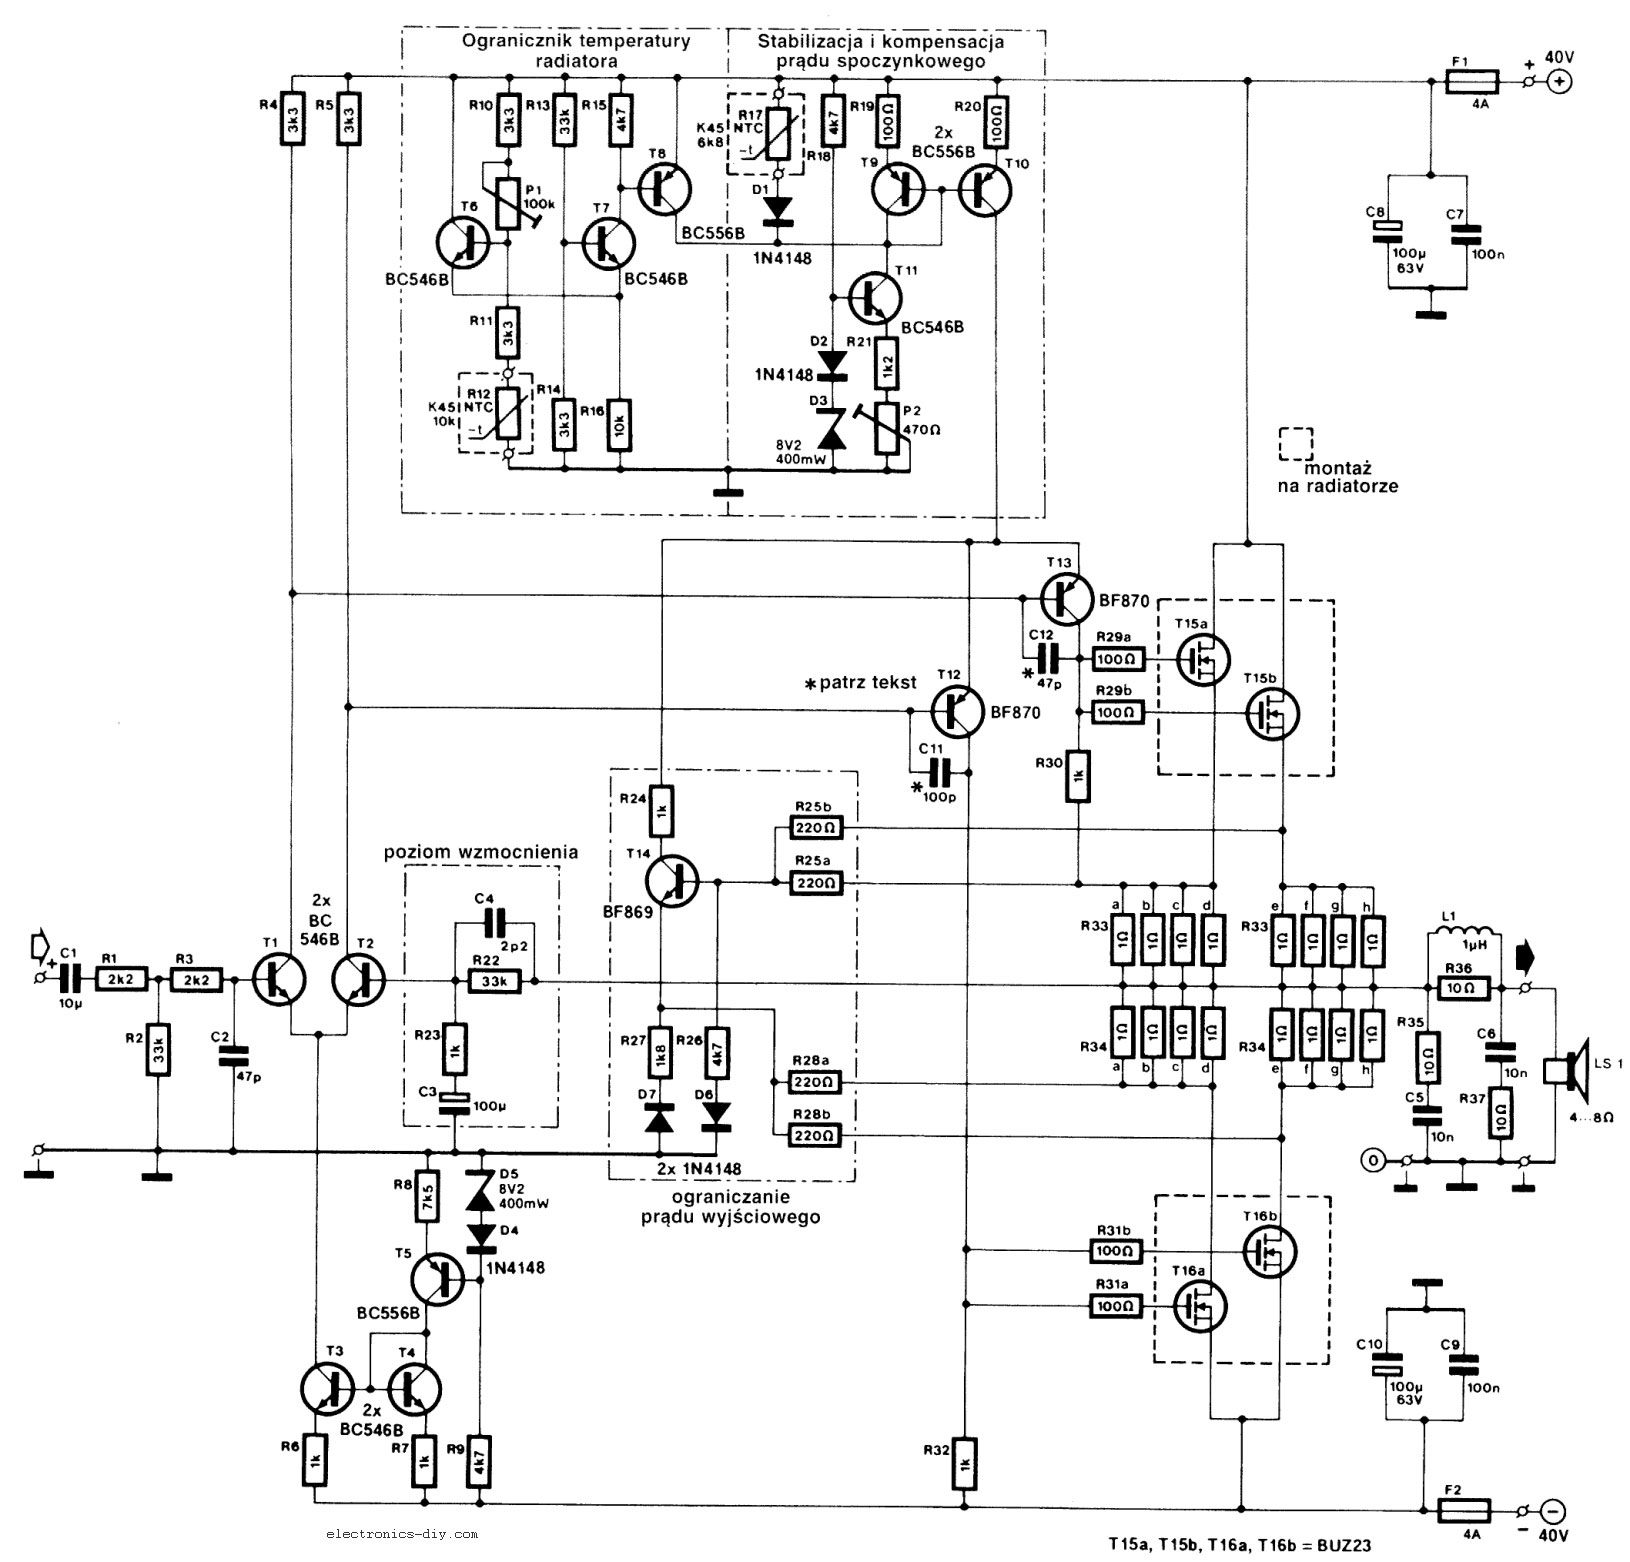 2000w power amplifier circuit diagram 2005 jeep wrangler wiring 240w mosfet